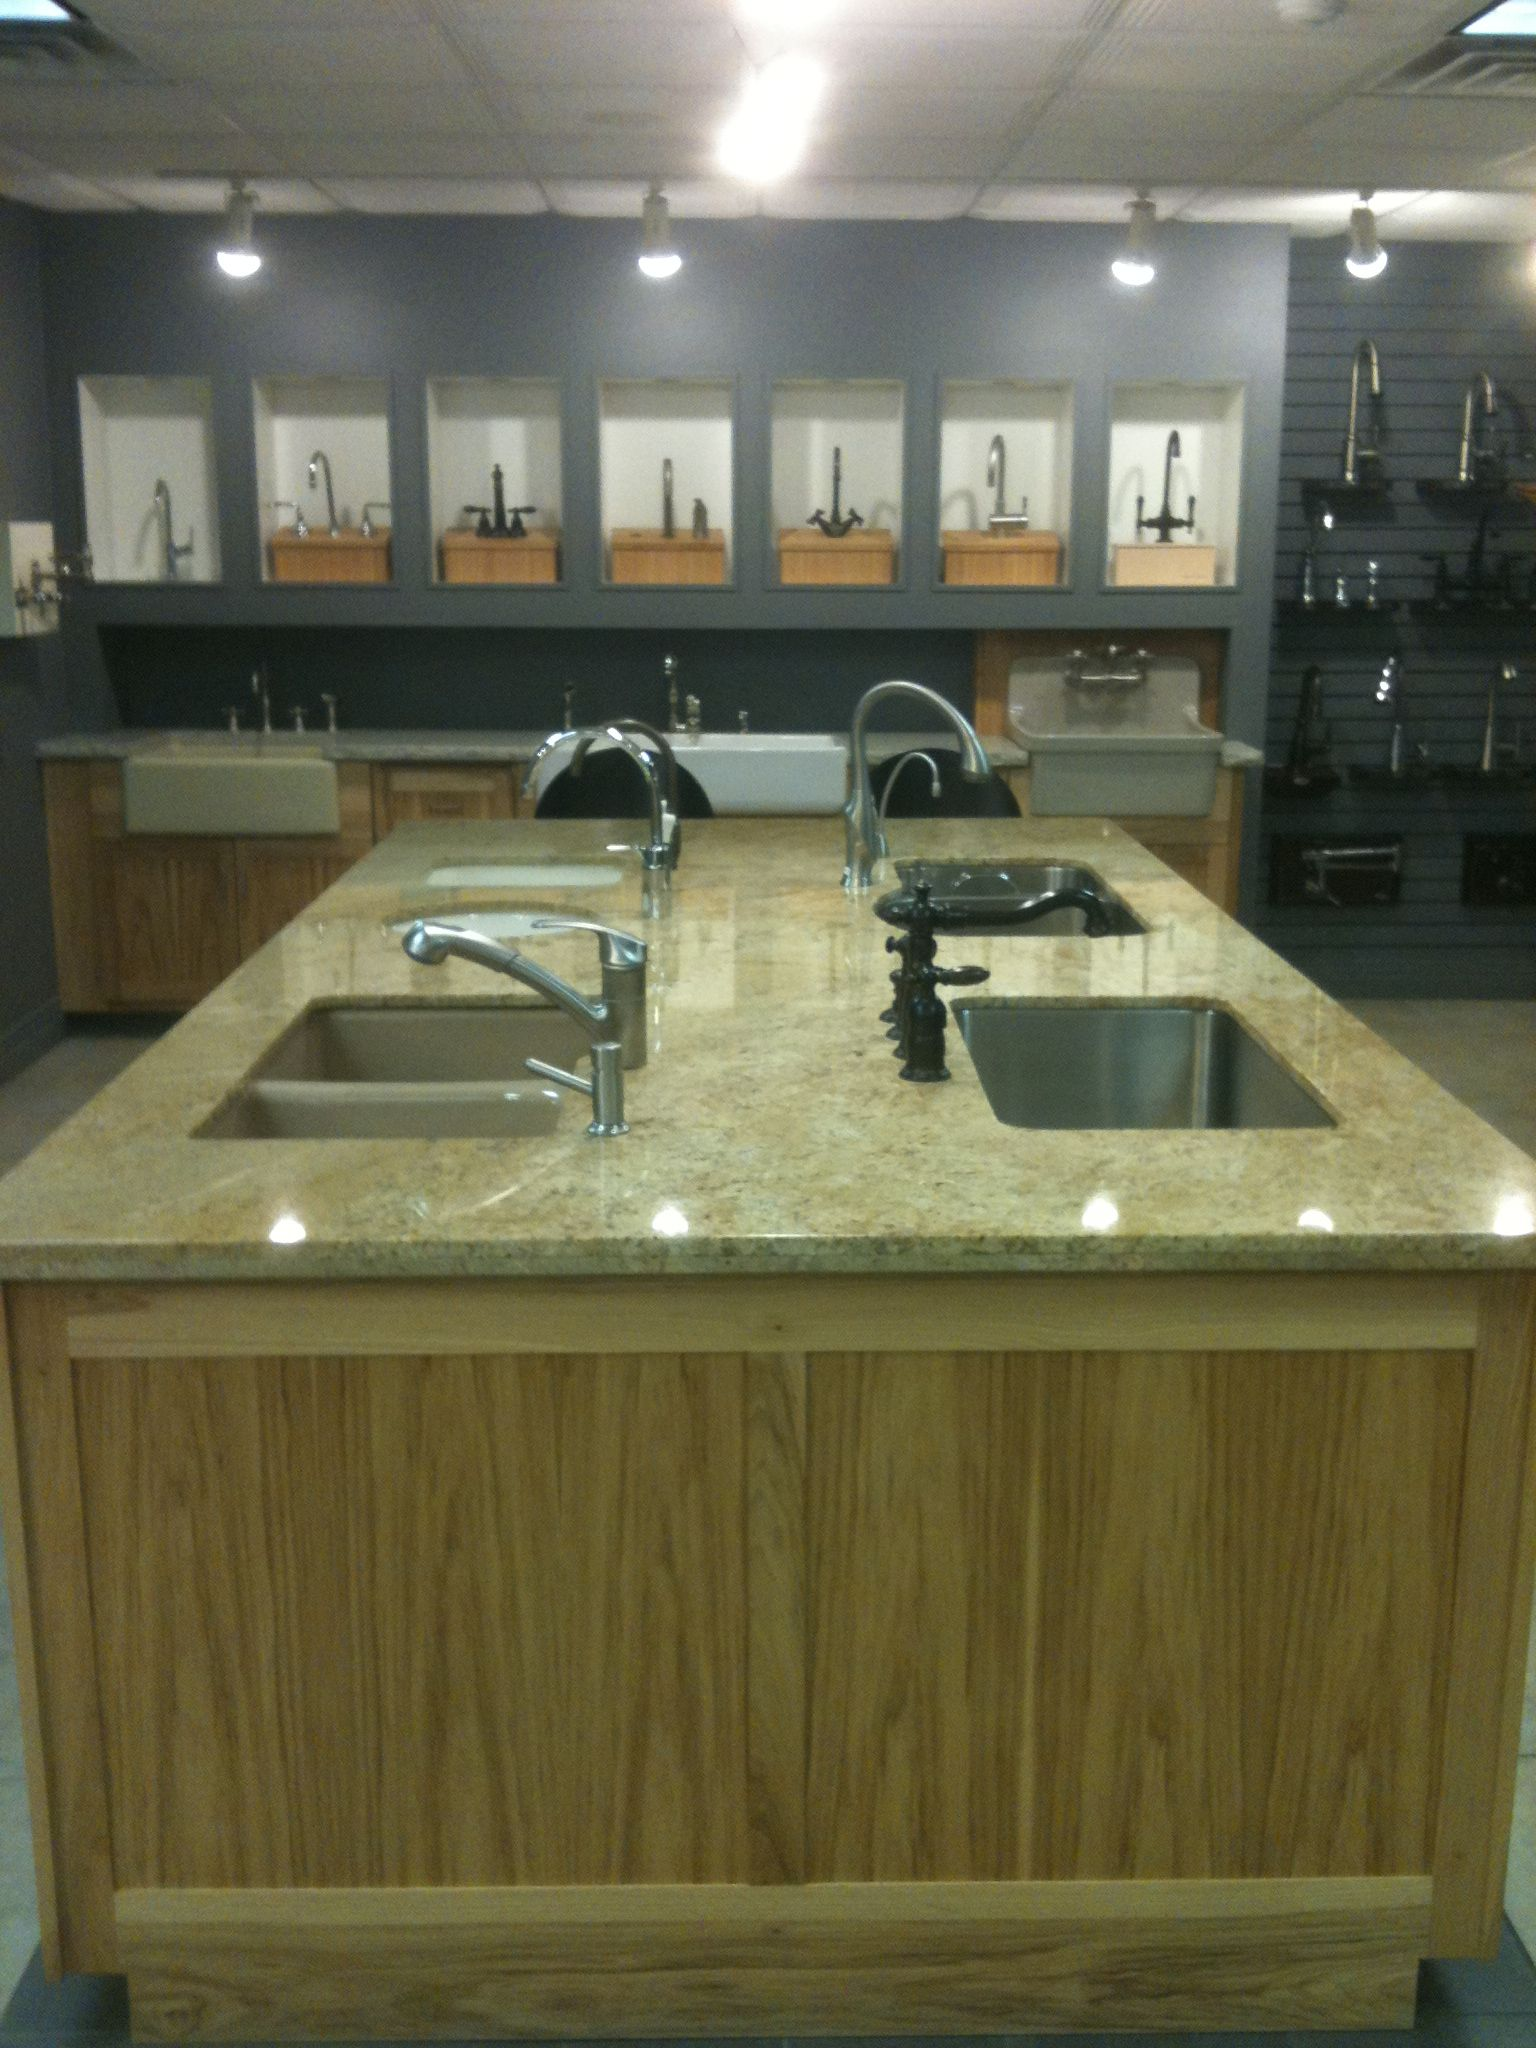 Kitchen Sinks Denver Lighting Melbourne Sink And Faucet Options Our